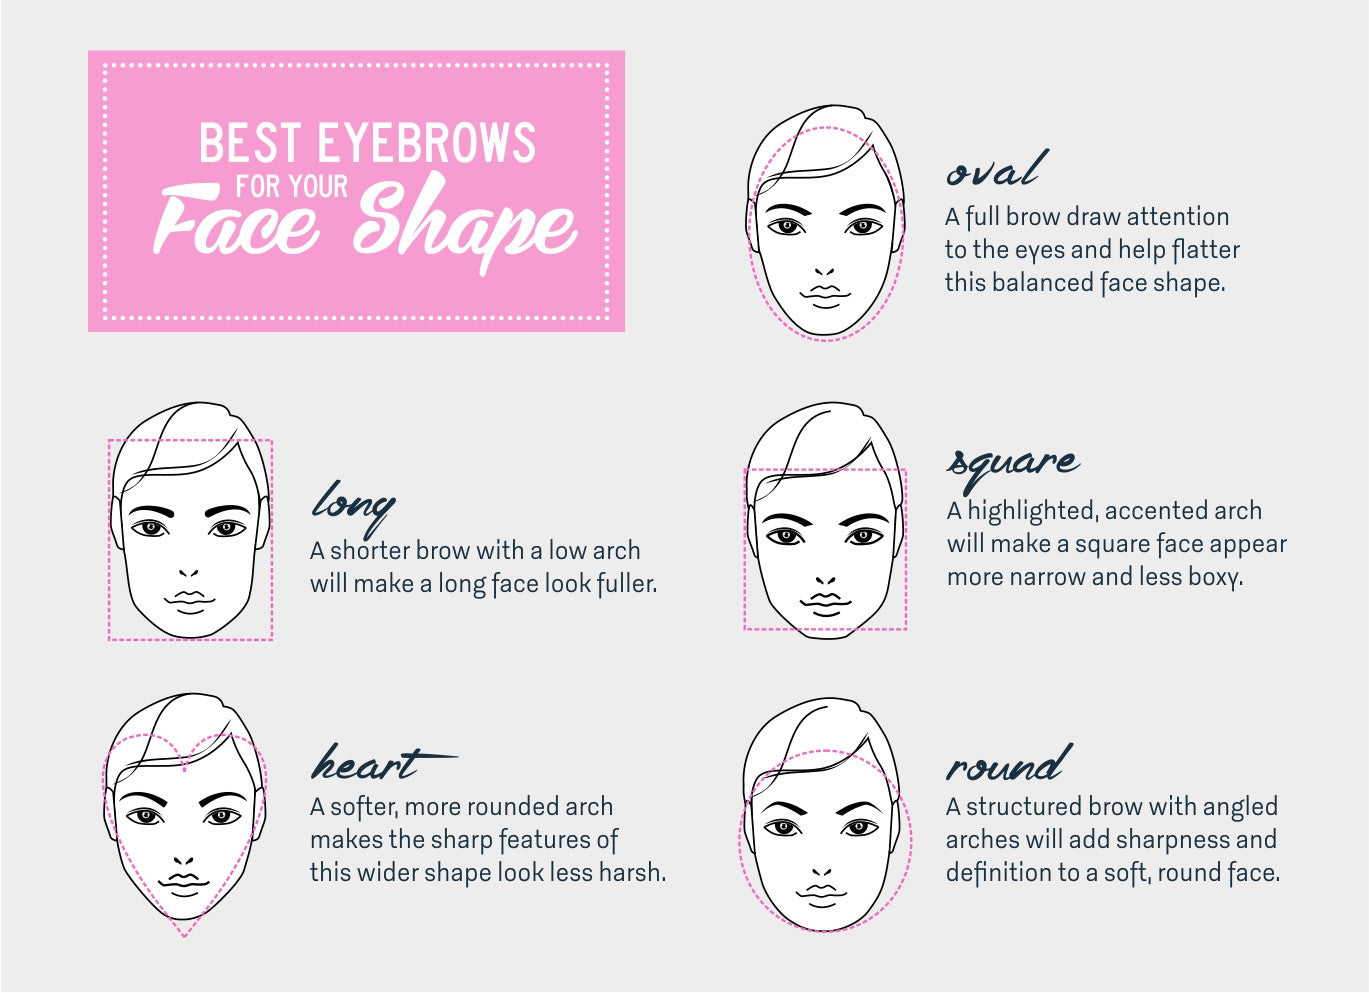 Best Eyebrows For Your Face Shape